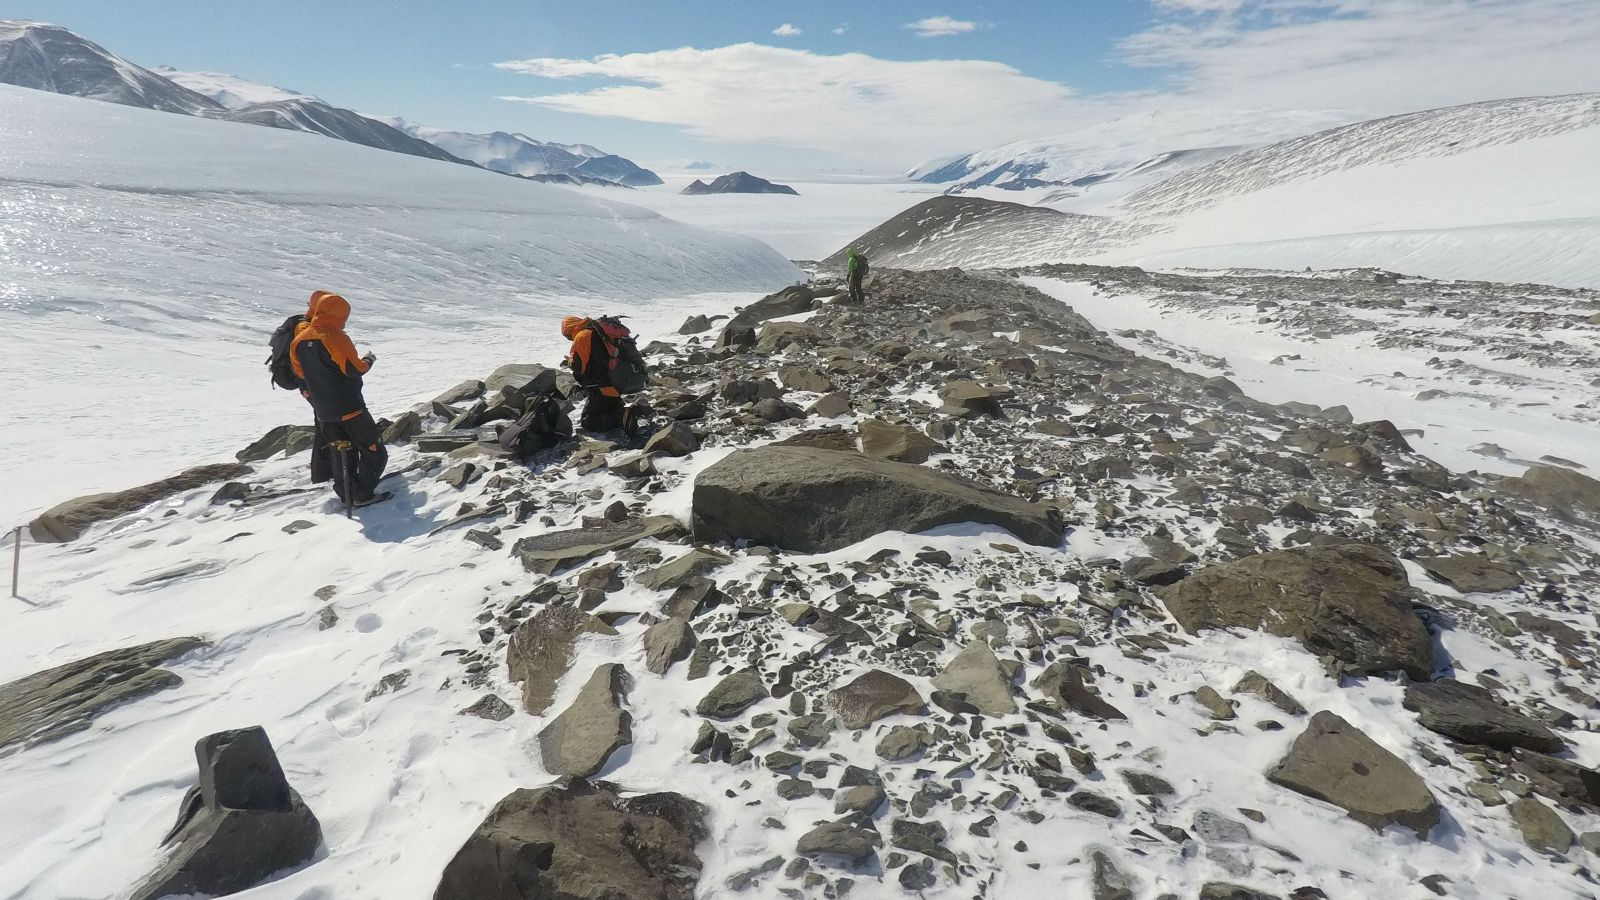 Students conducting research in the Football moraines, Idisto Inlet, Antarctica.